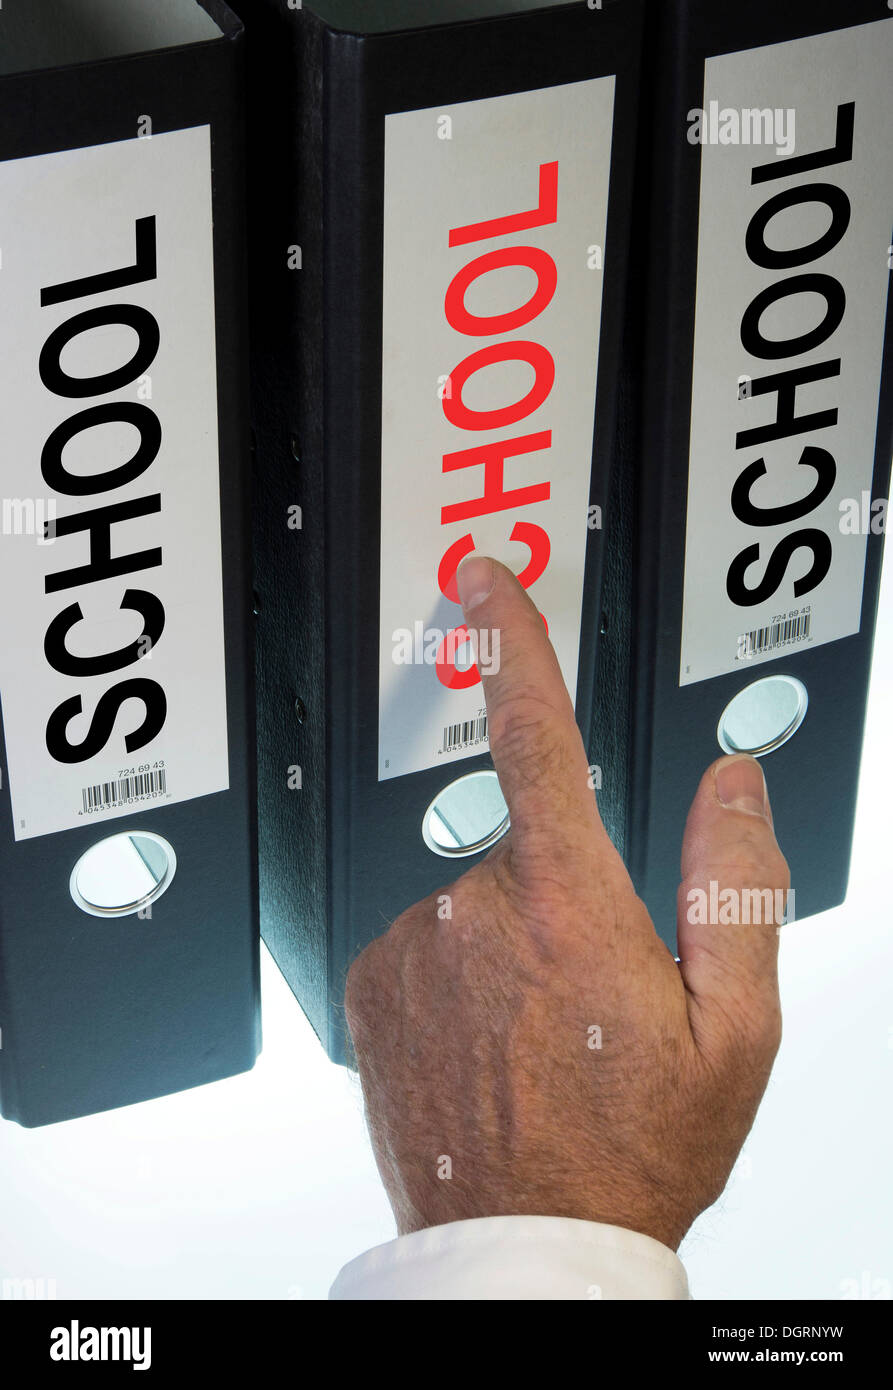 """Hand pointing to a file folder labeled """"School"""" - Stock Image"""